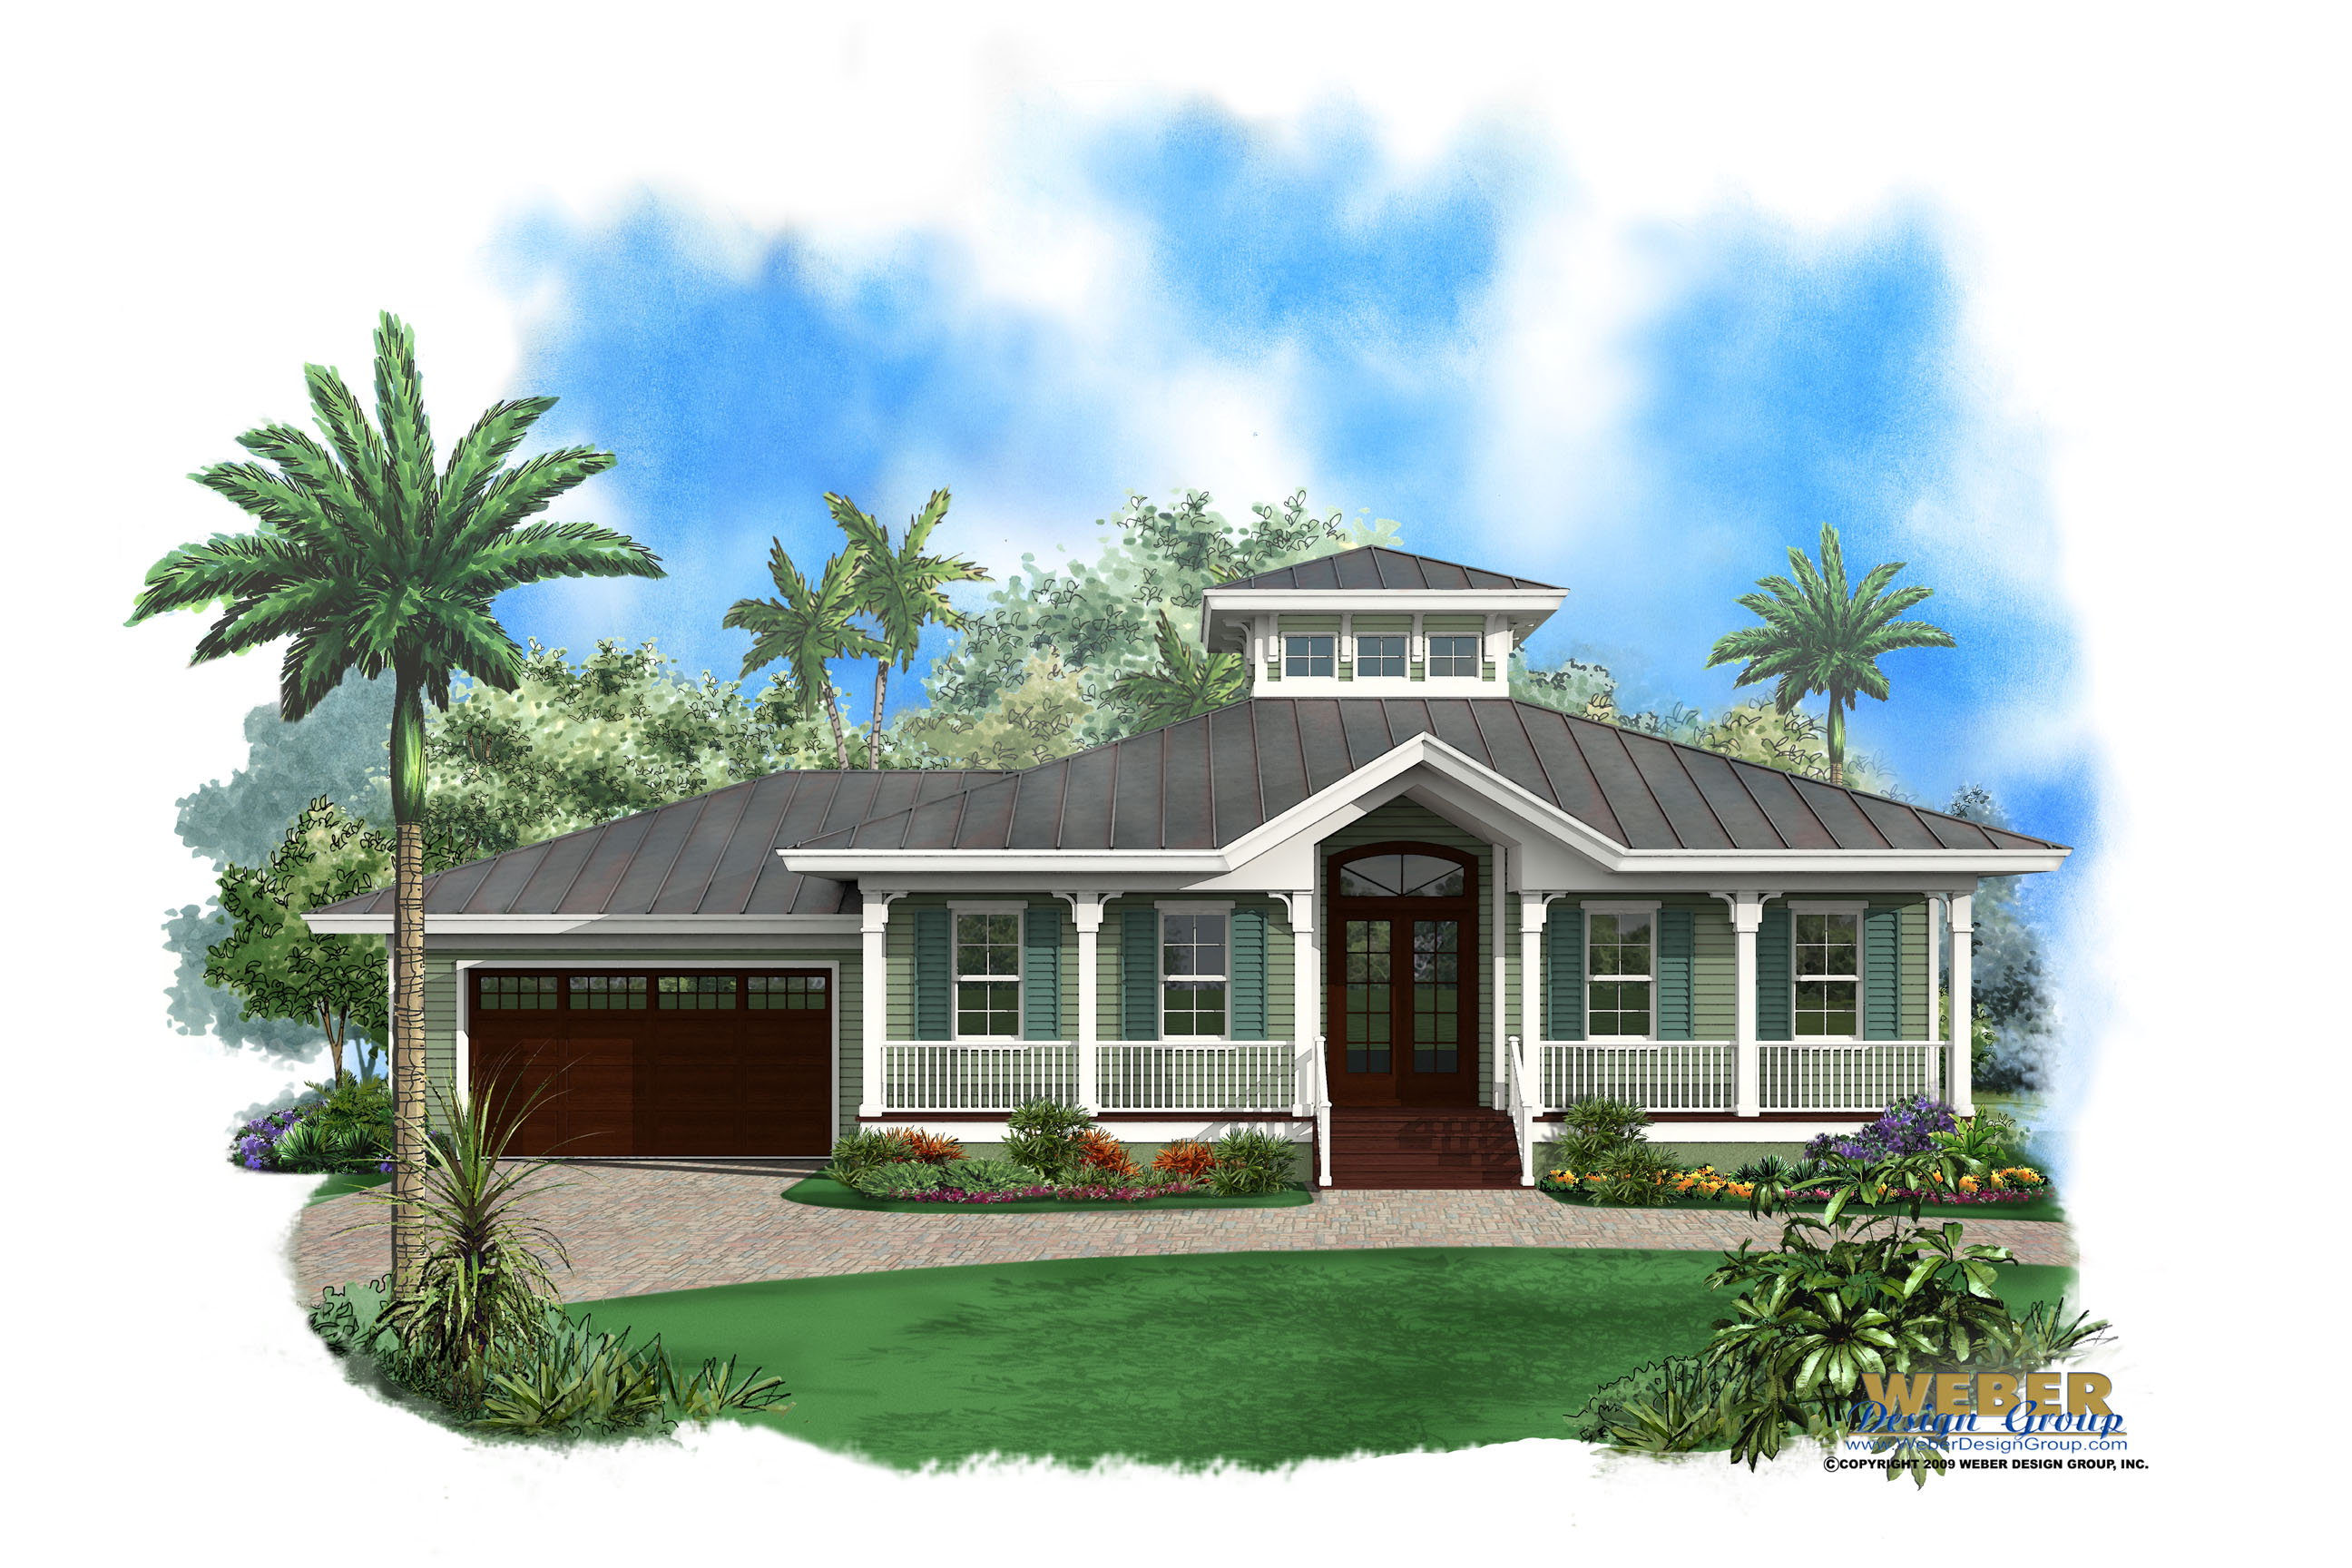 Home plans with pool home designs with pool from homeplans com - Ambergris Cay House Plan